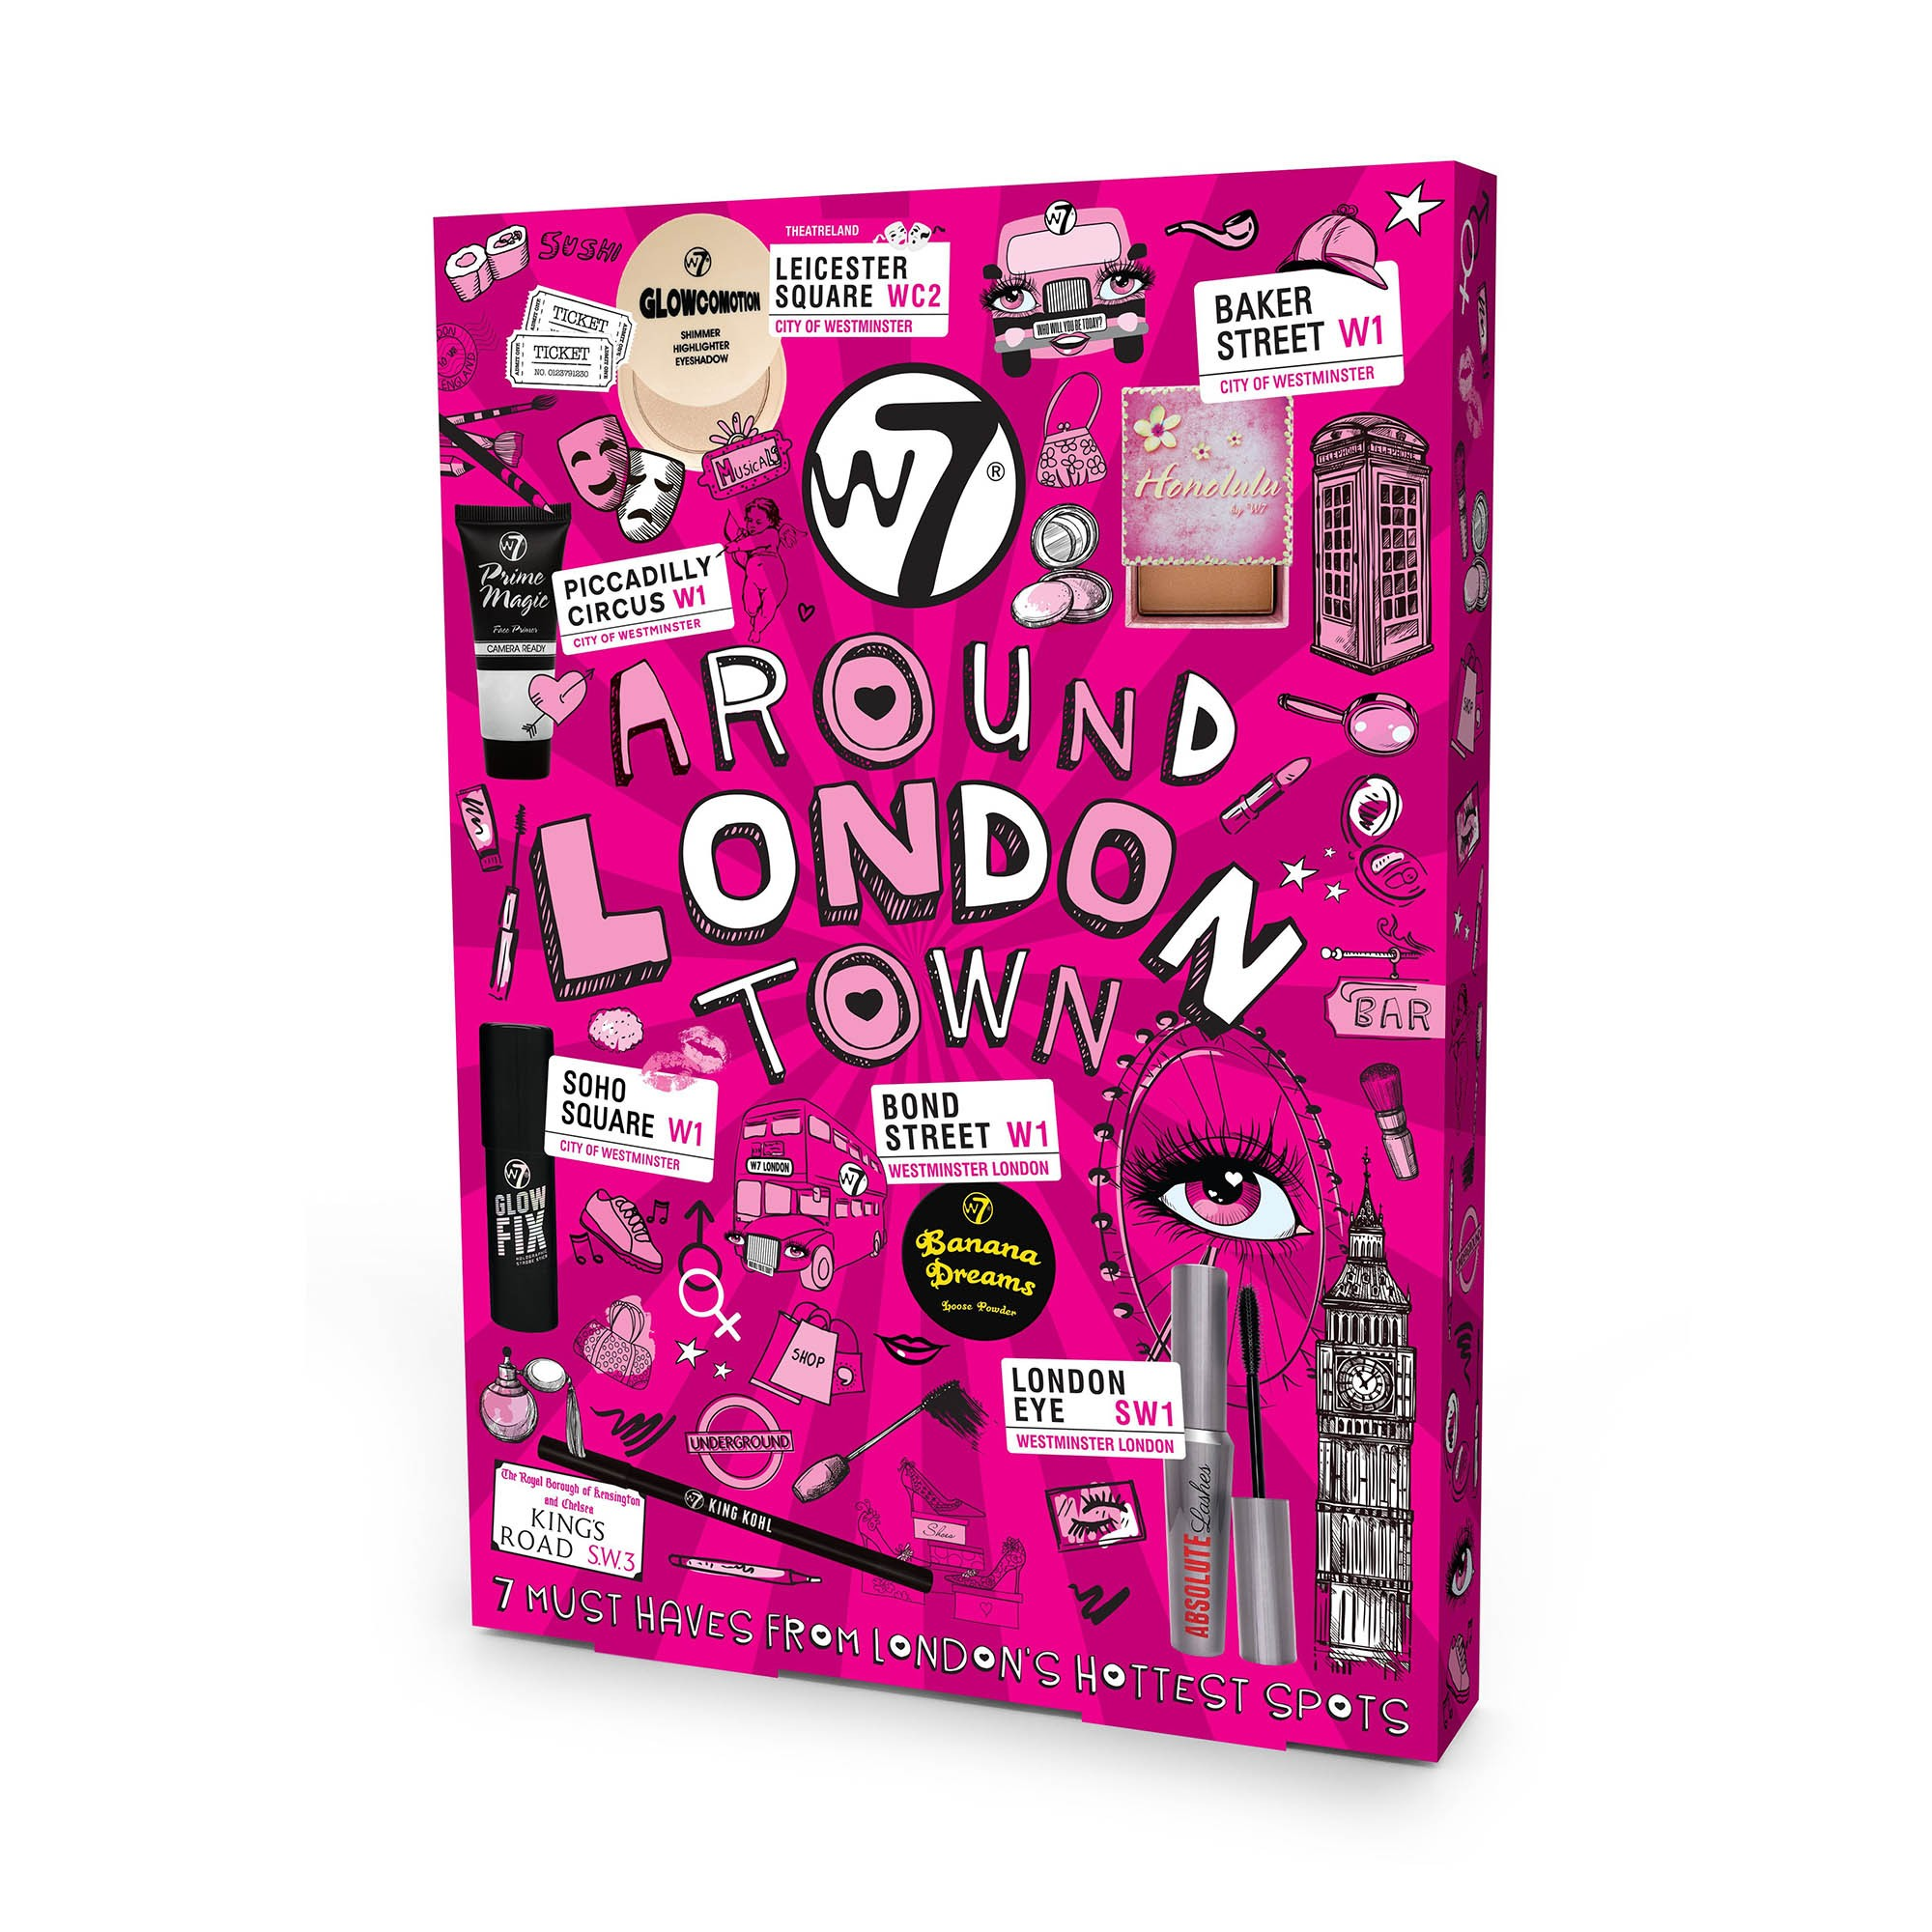 Make-Up Set - Around London Town